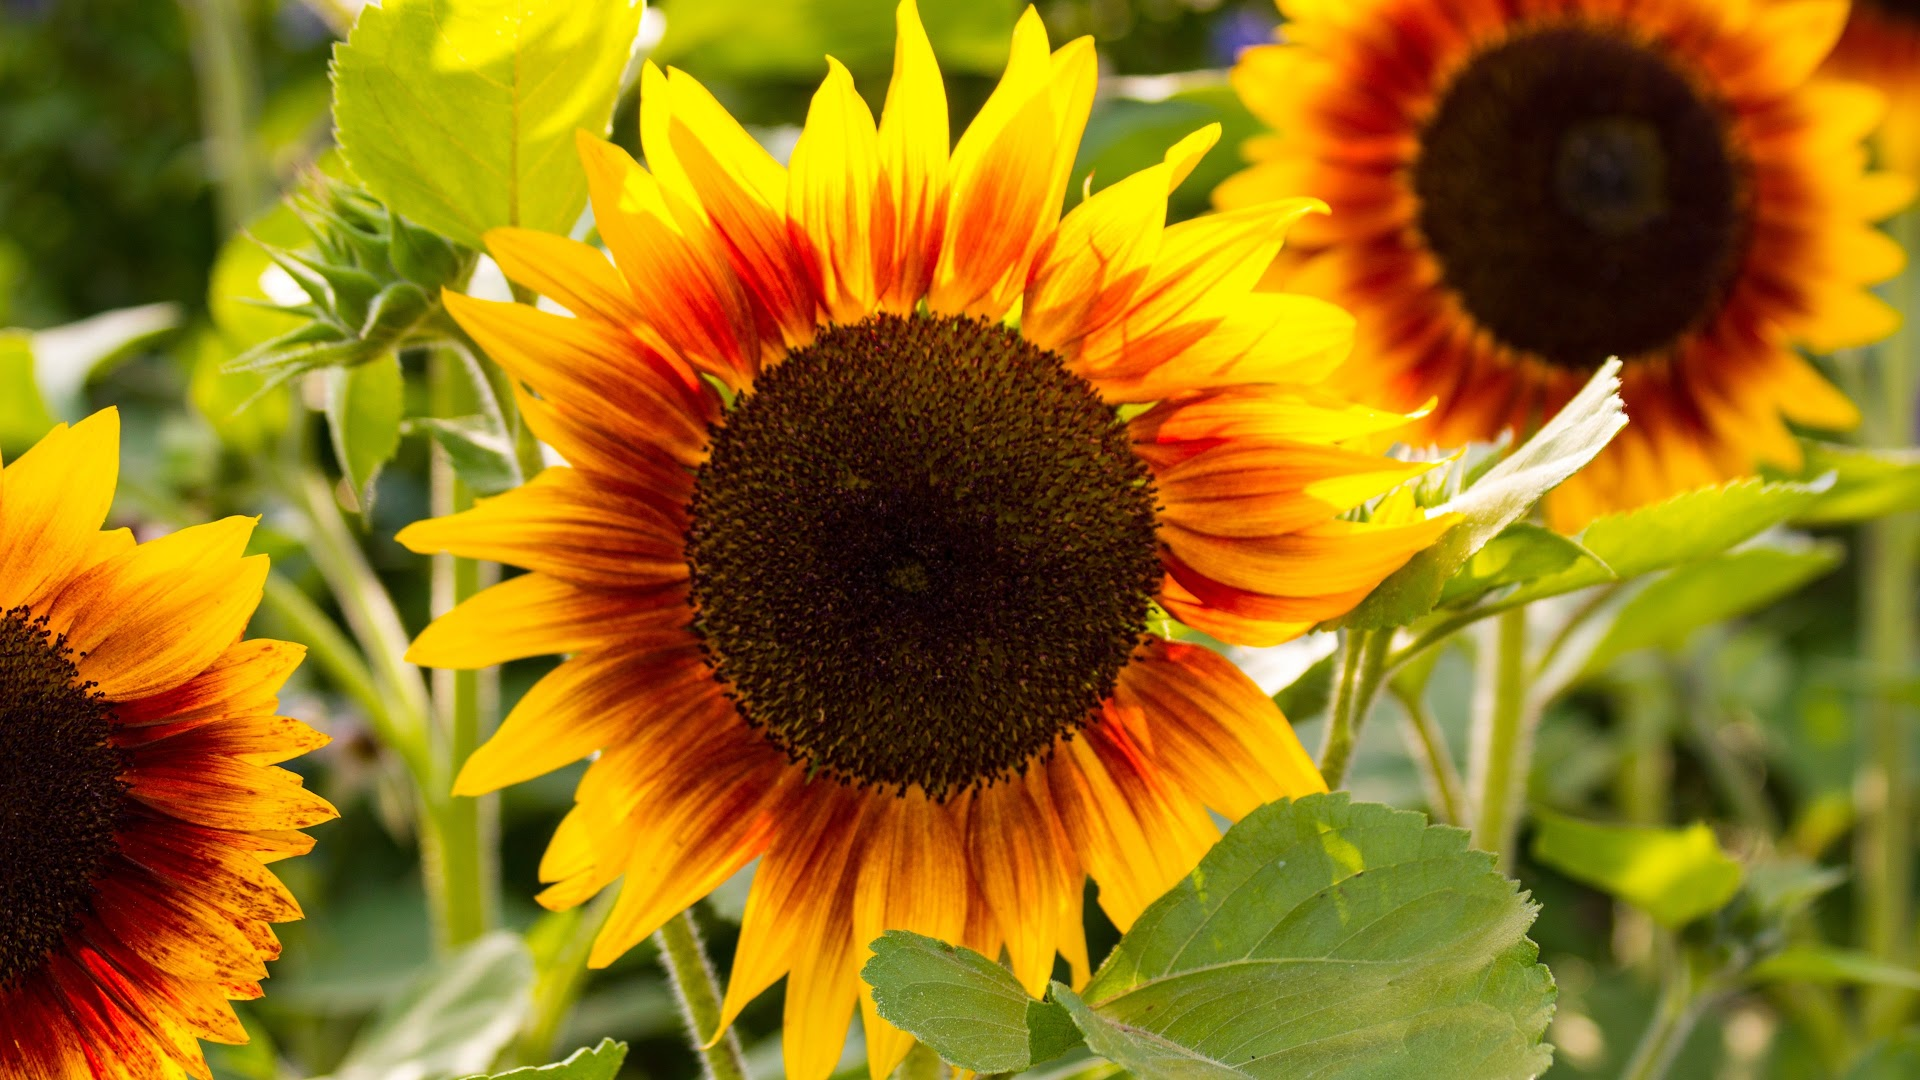 summer sunflowers andrea - photo #30